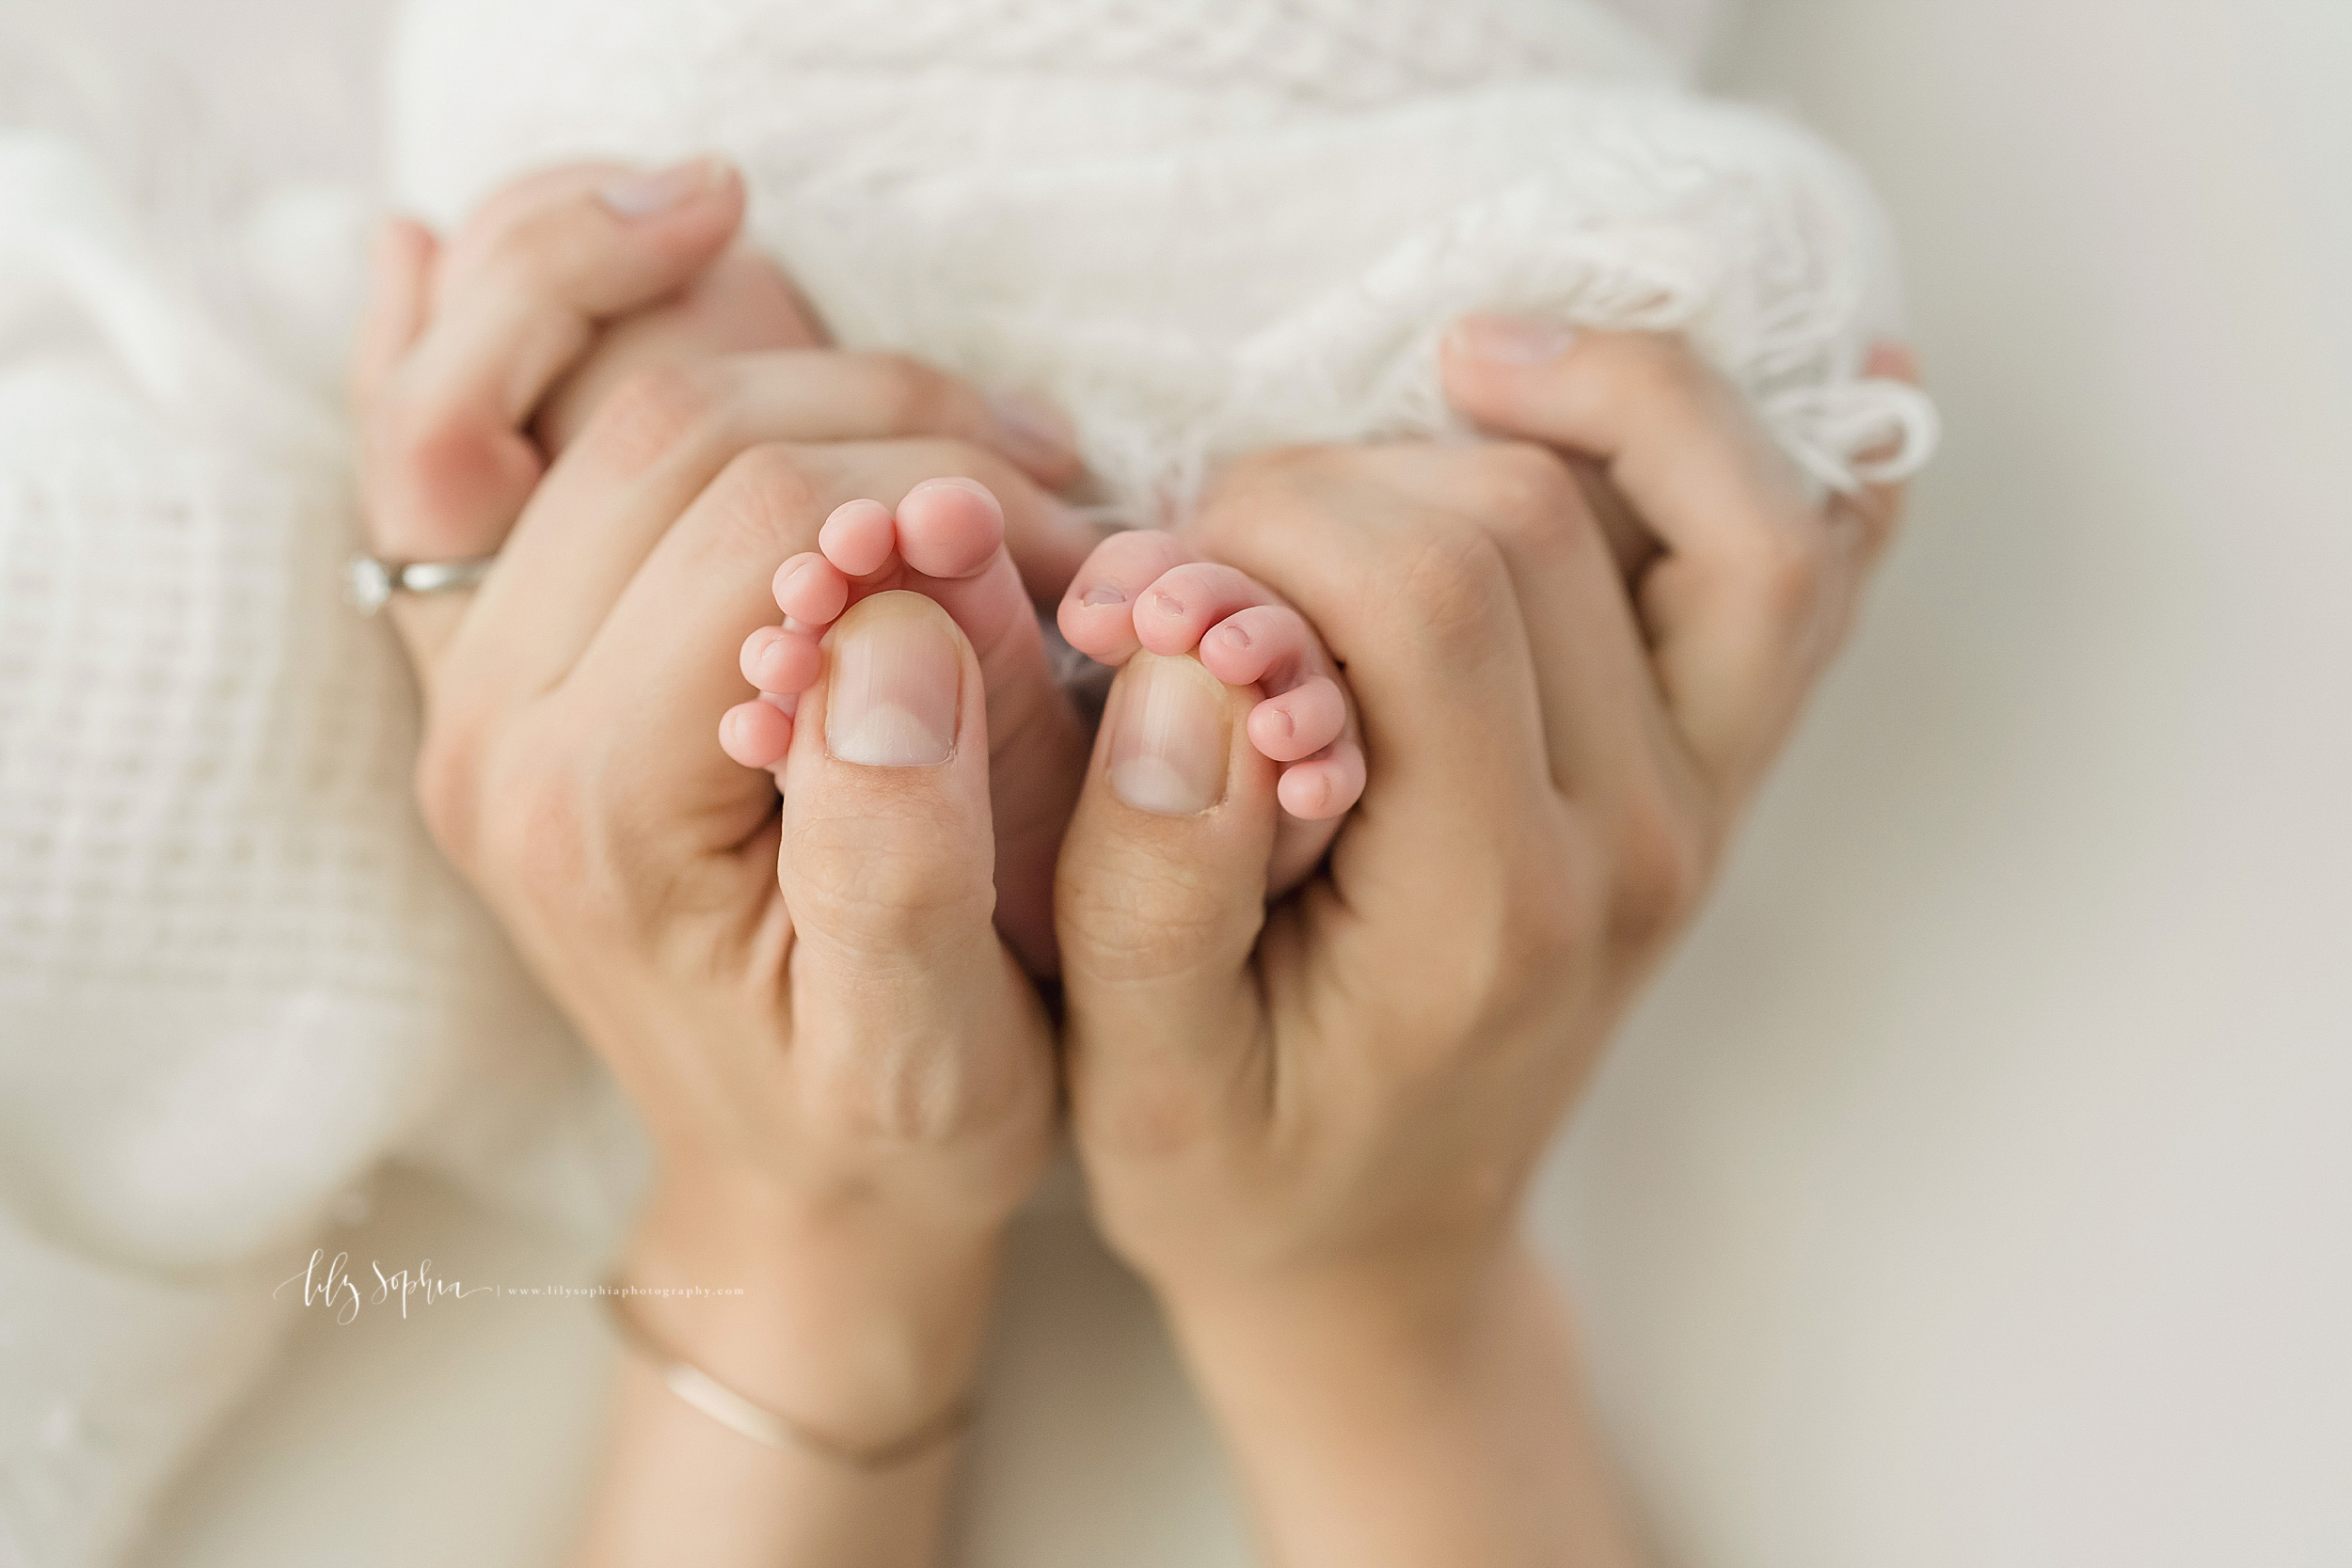 Newborn image of mom holding her infant daughter's feet and admiring the tiny toes and toe nails taken in Atlanta.